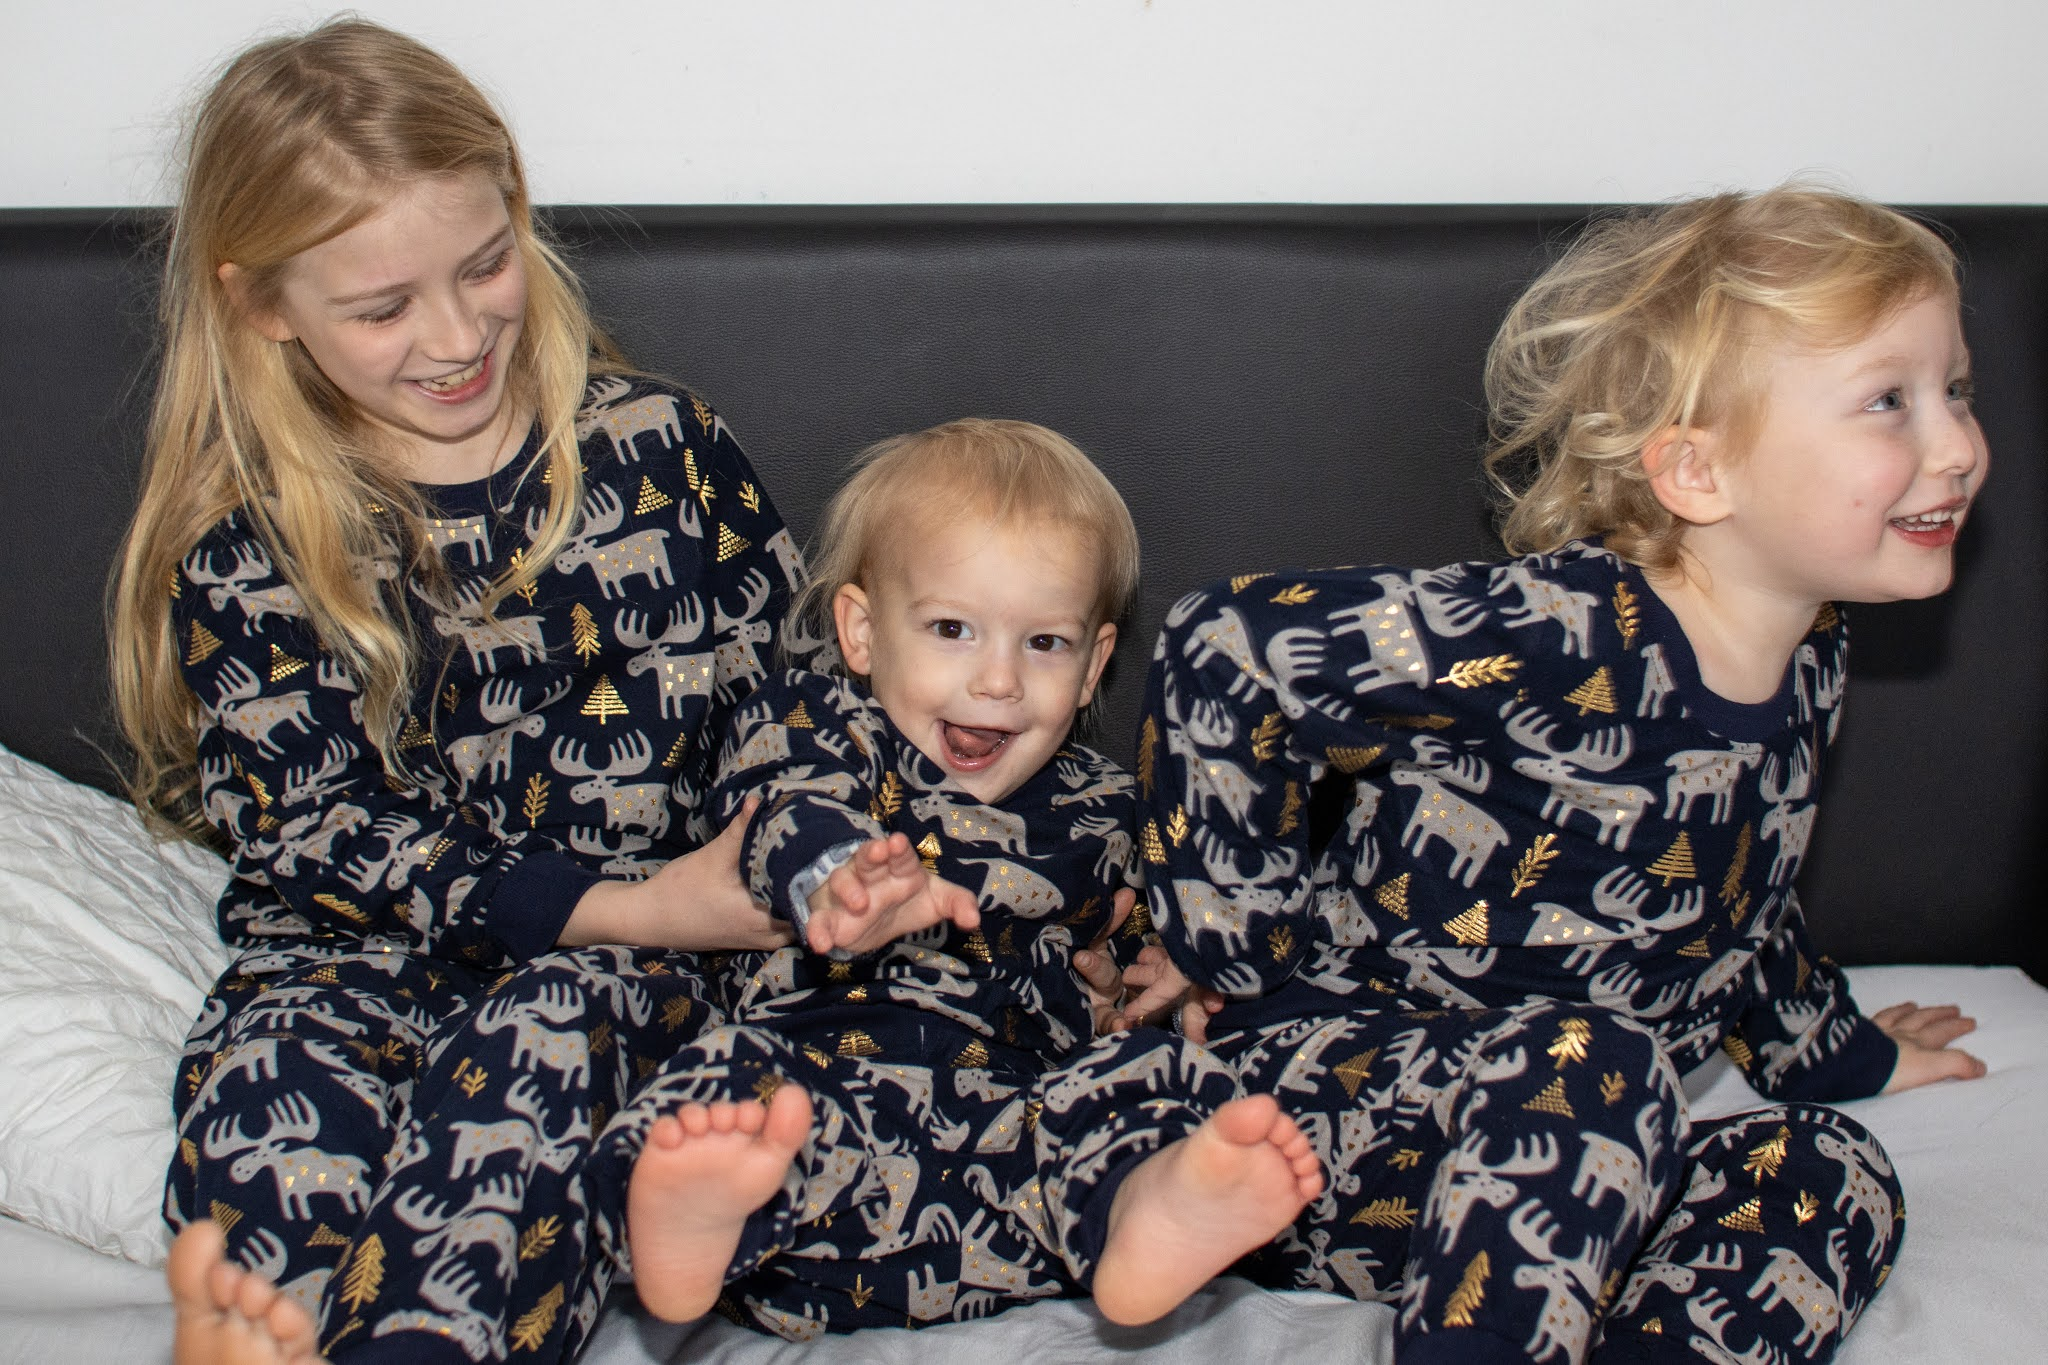 3 siblings on a bed in matching Christmas pyjamas. The oldest sibling splits her time between parents houses